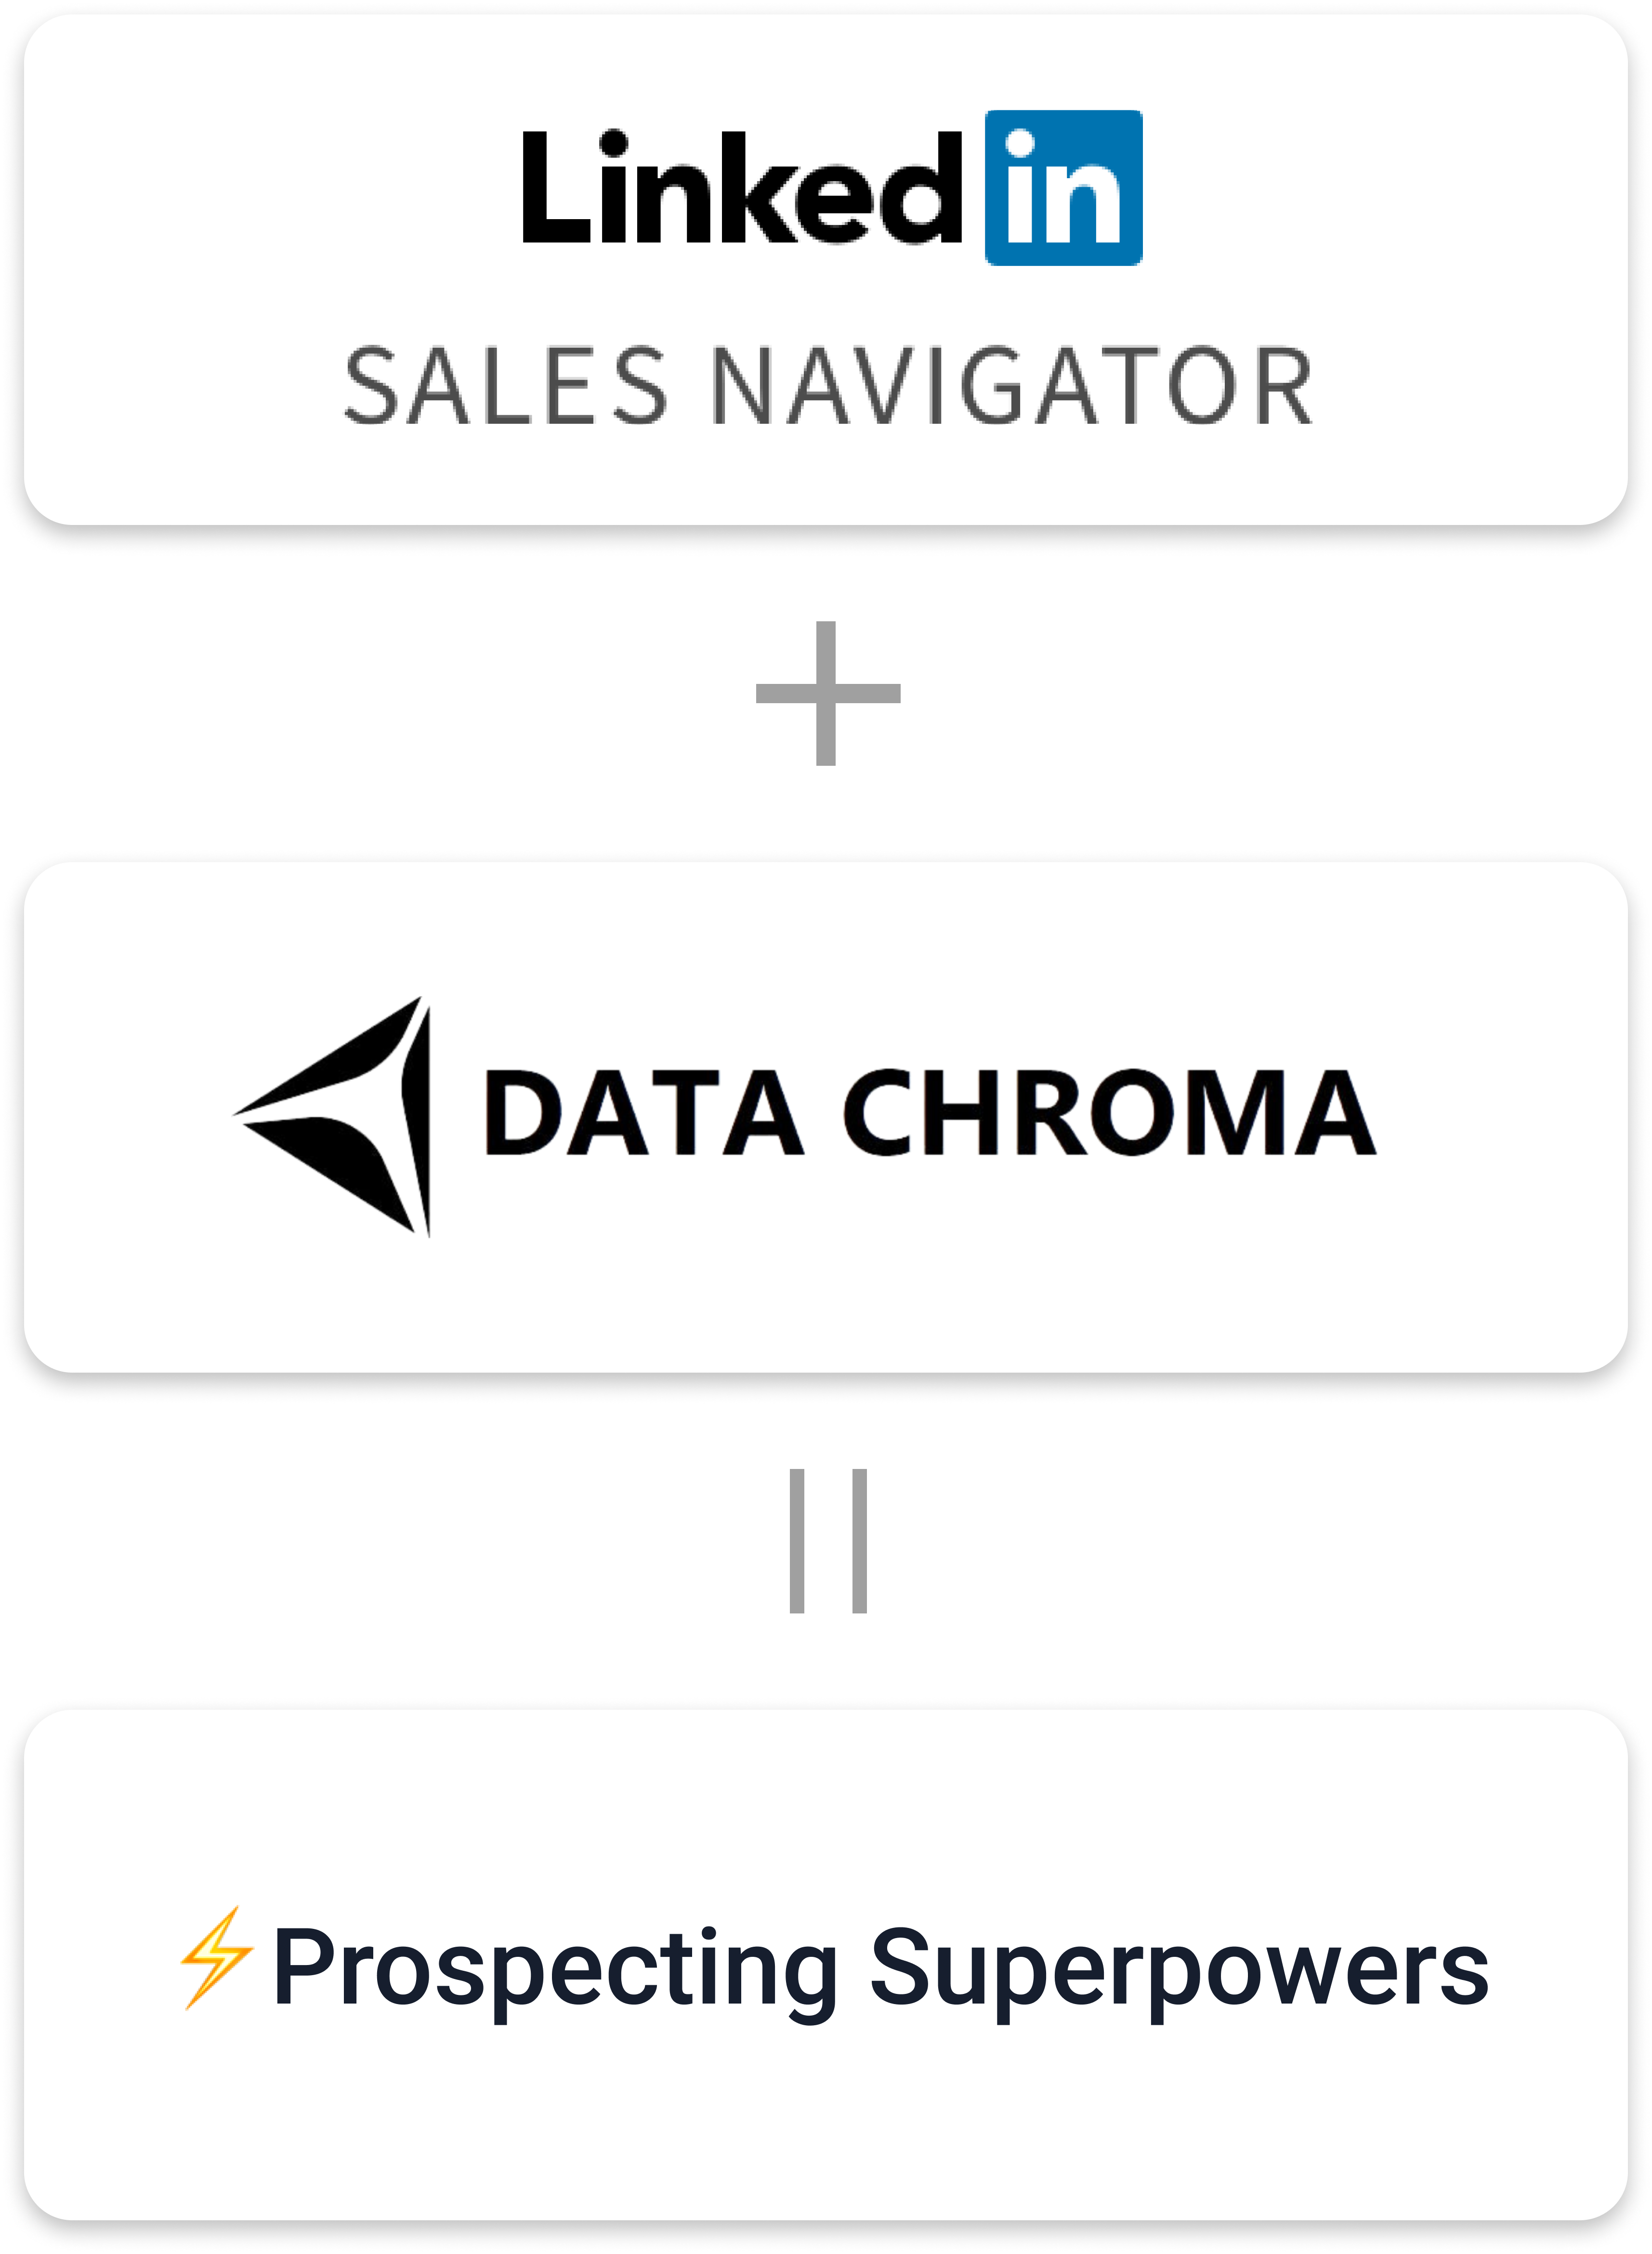 Supercharge Sales Navigator Prospecting with Data Chroma